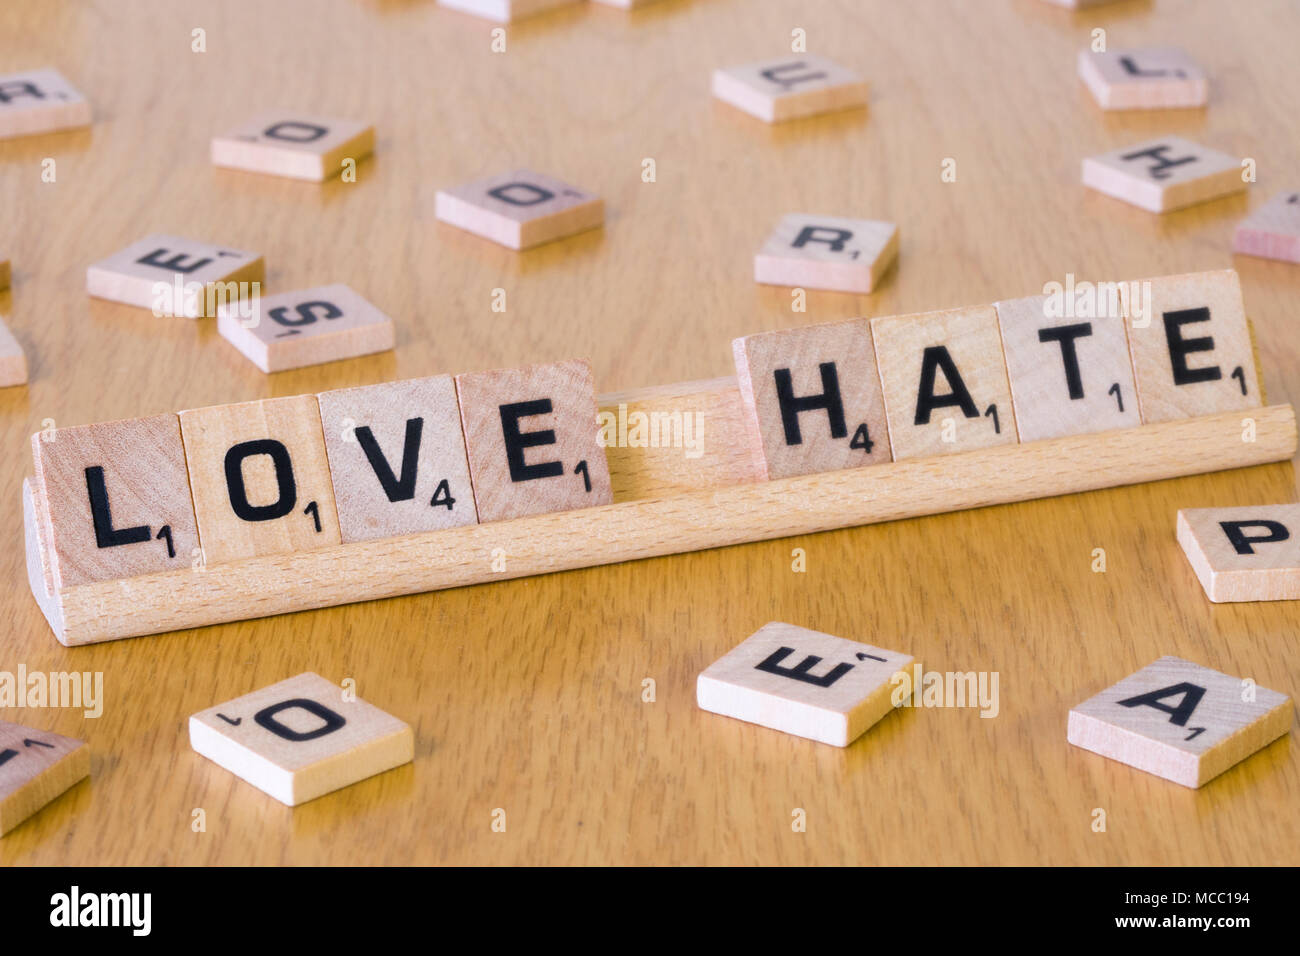 Scrabble letters spelling out the words Love & Hate - Stock Image